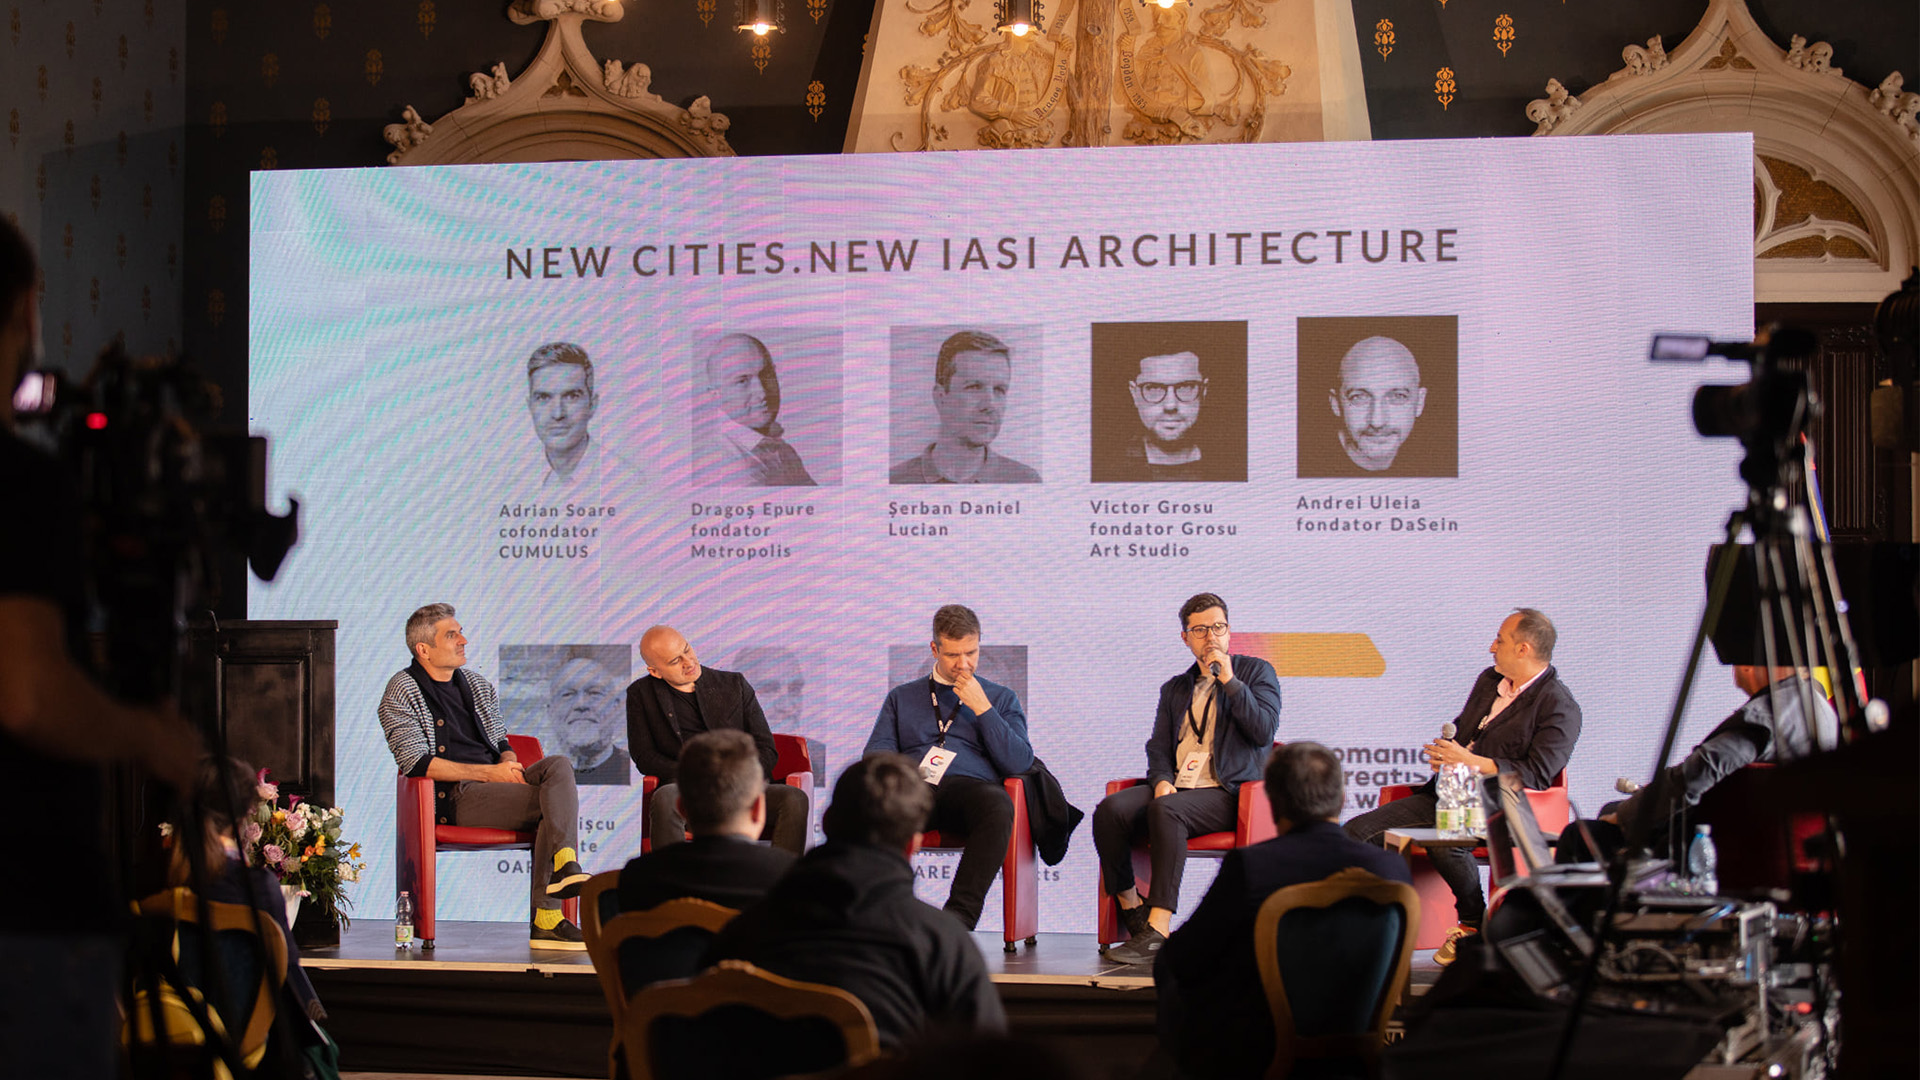 New Cities. New Iasi Architecture image